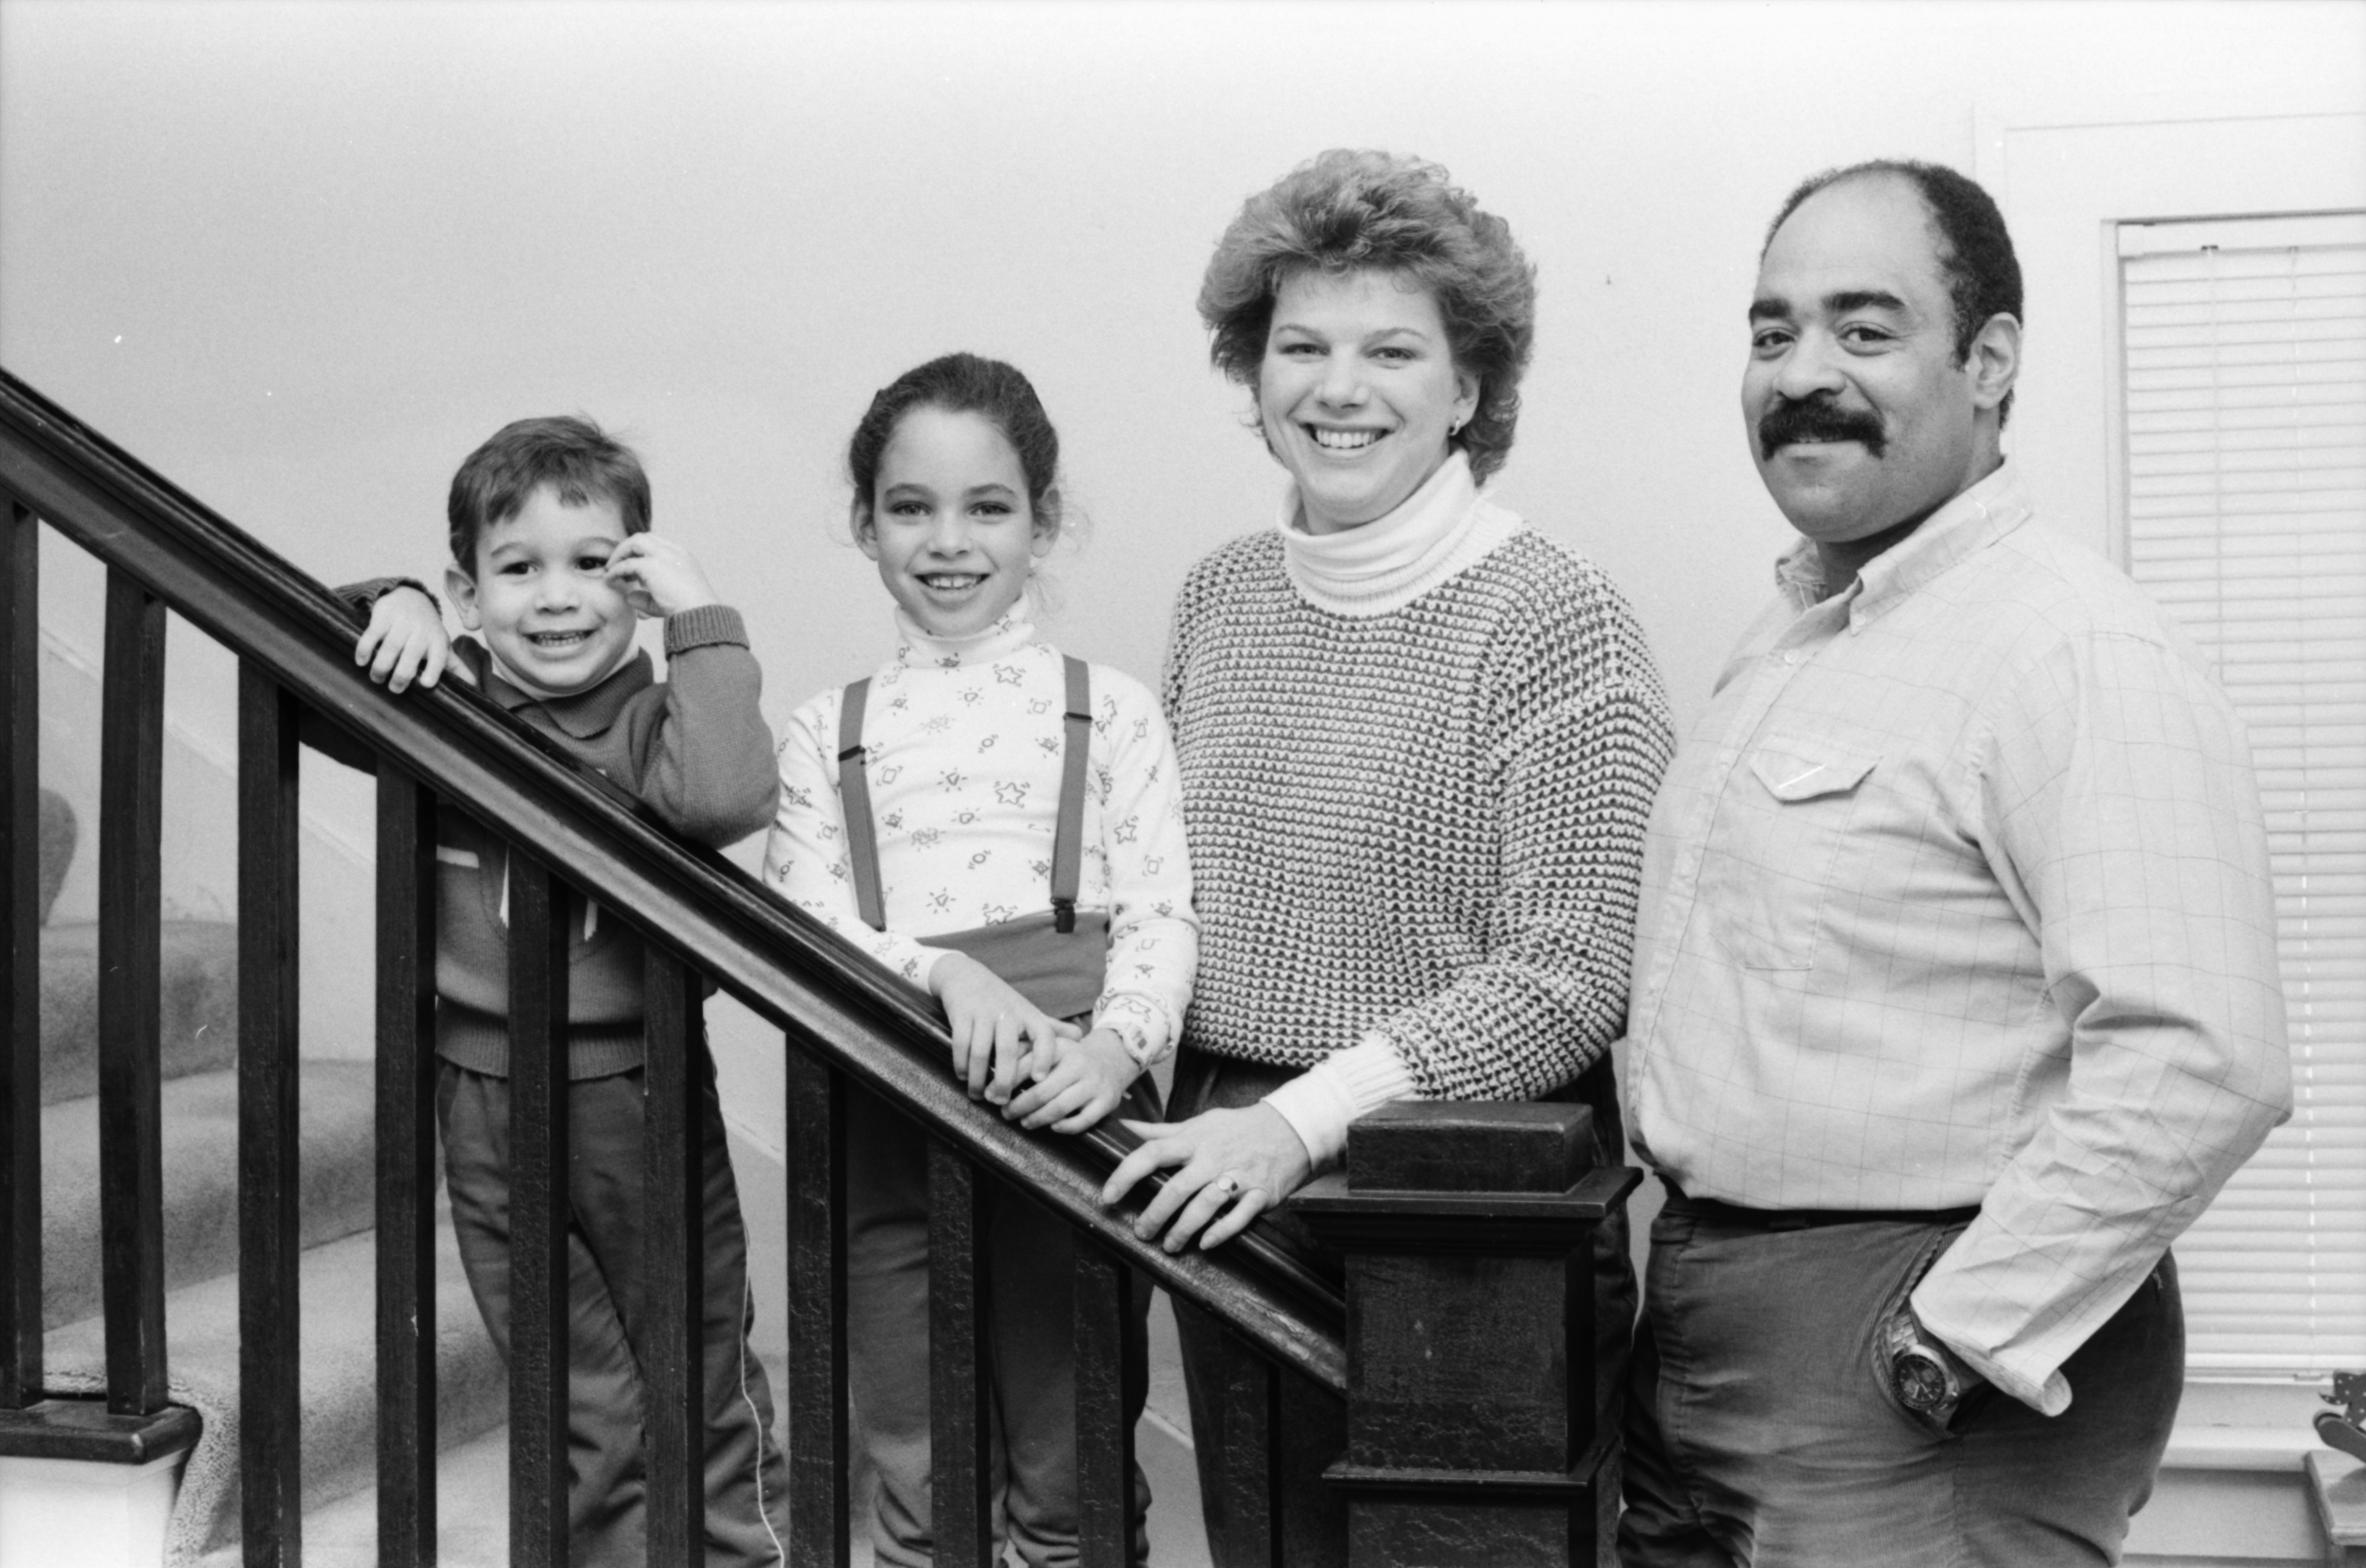 Portrait of Richard and Katie Blake with their Two Children, February 1988 image